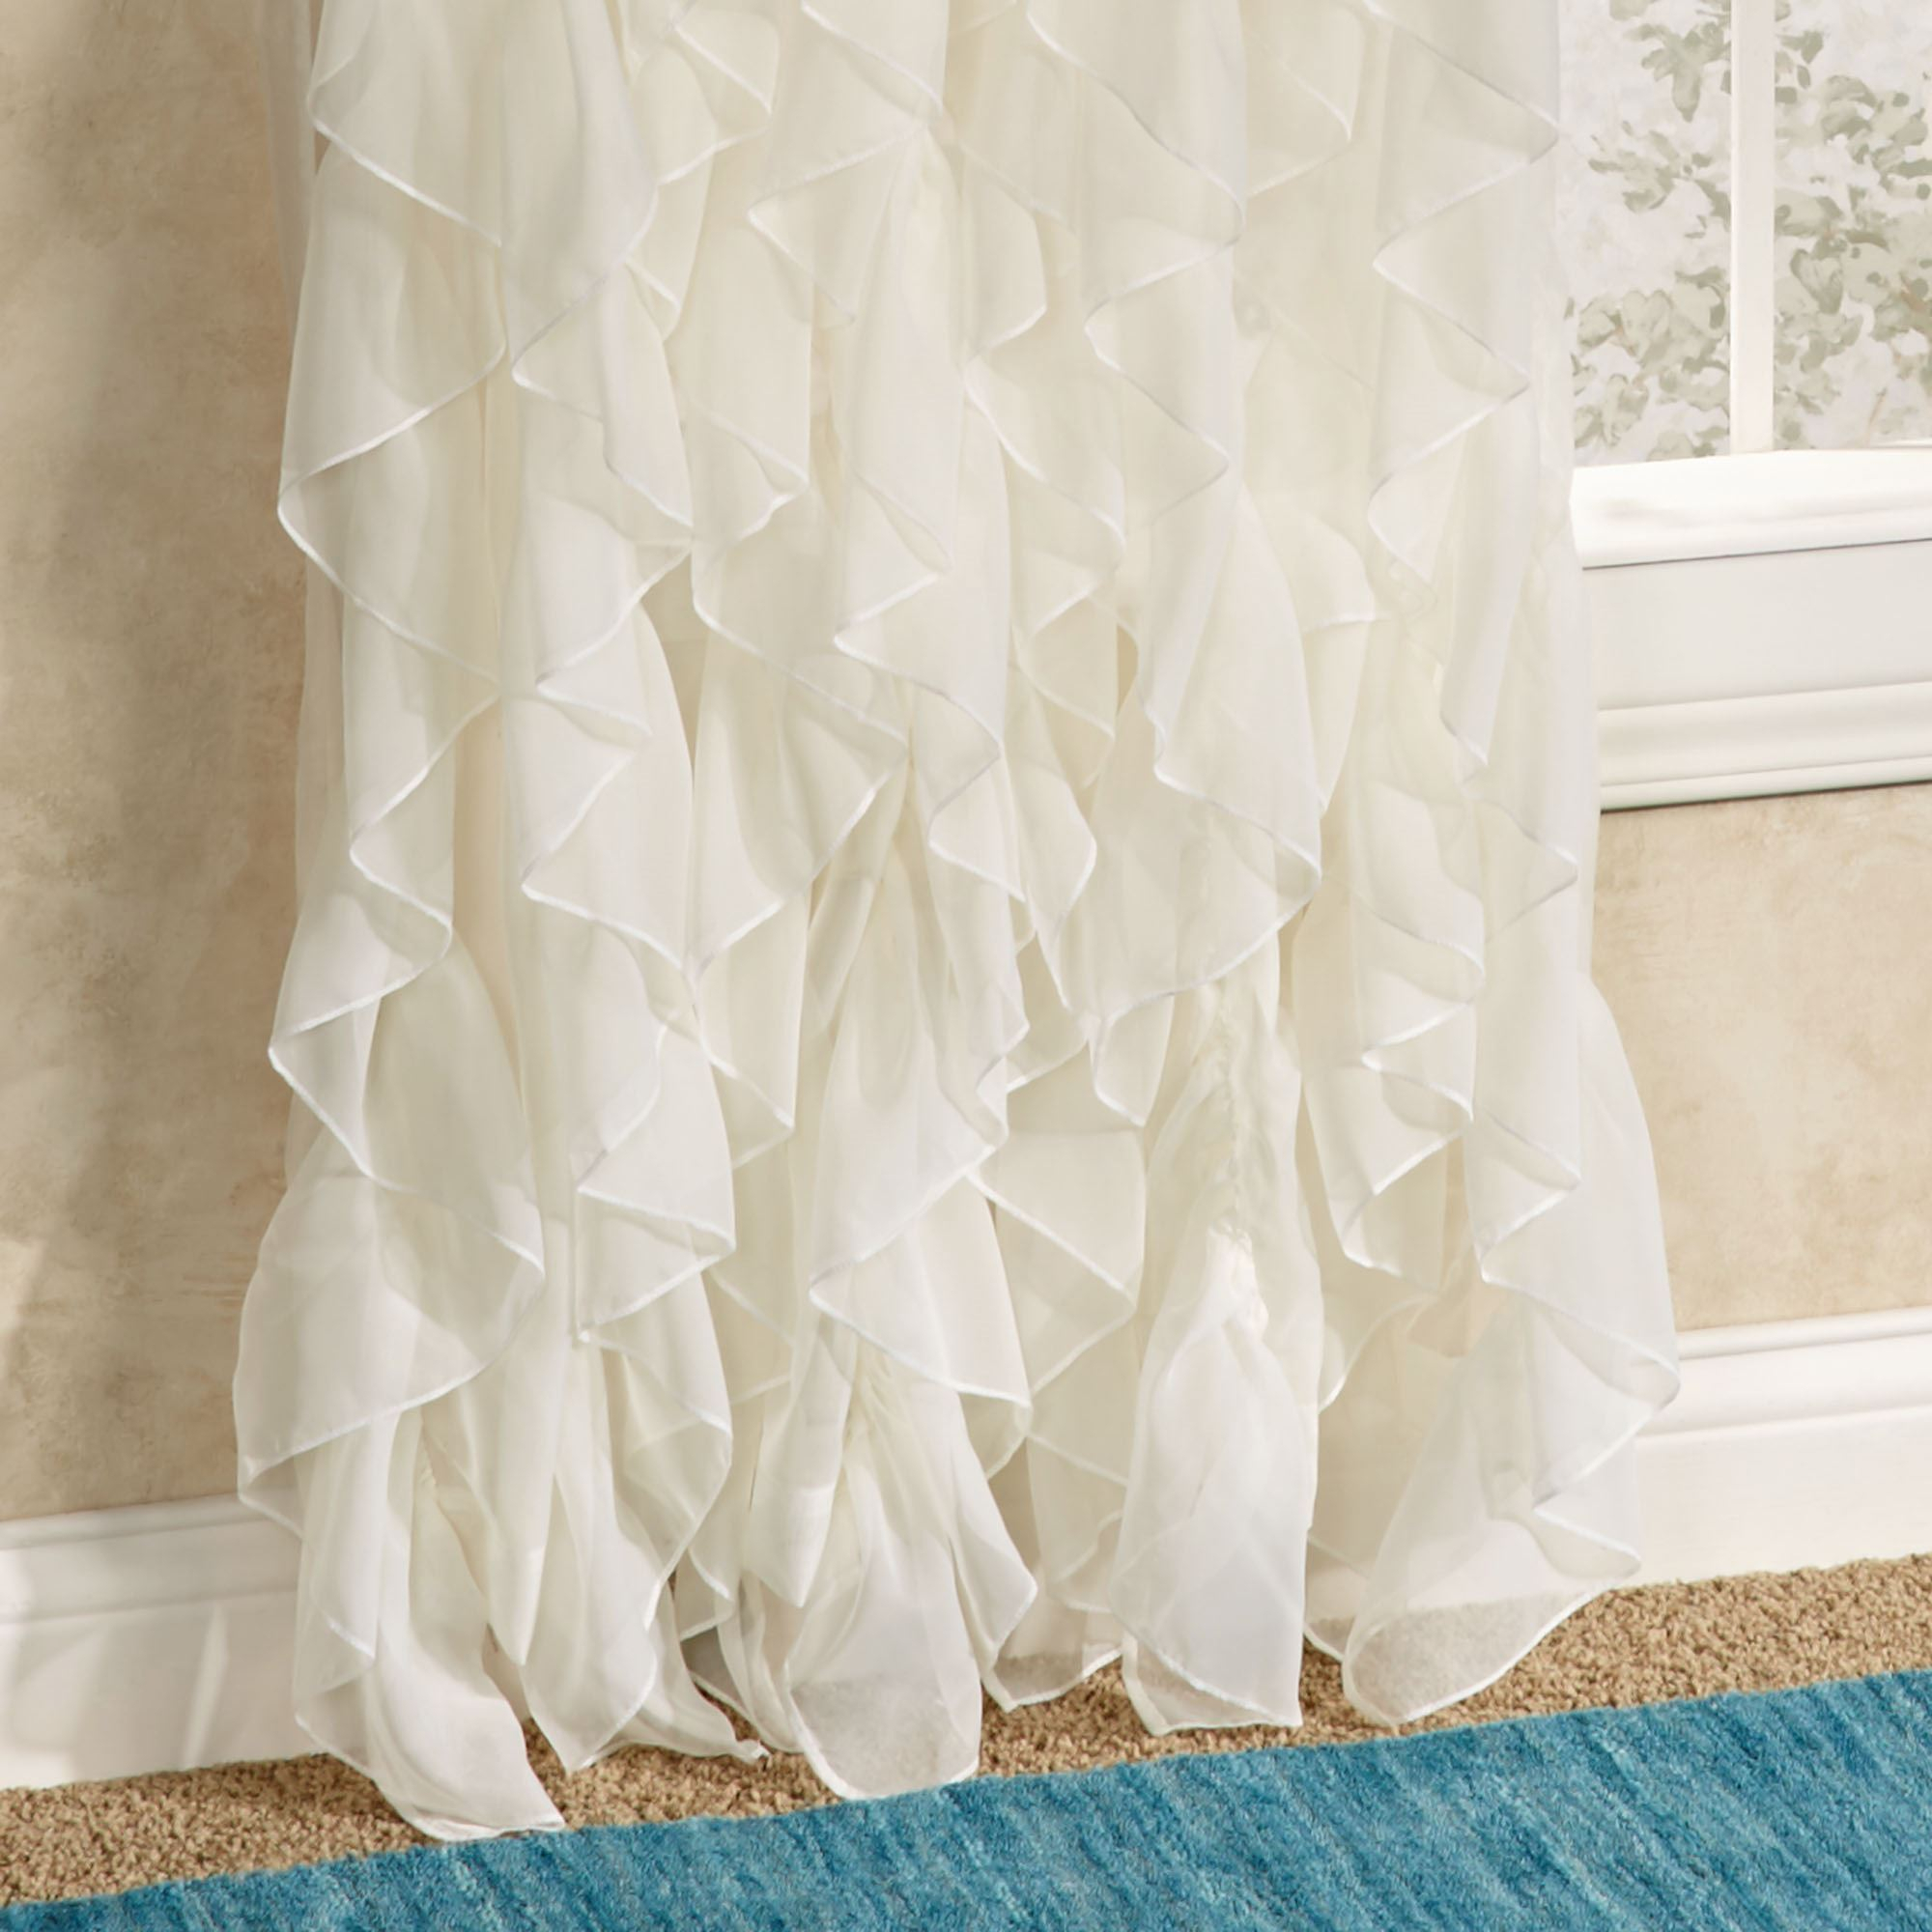 Cascade Sheer Voile Ruffled Window Treatment Pertaining To Chic Sheer Voile Vertical Ruffled Window Curtain Tiers (View 3 of 20)